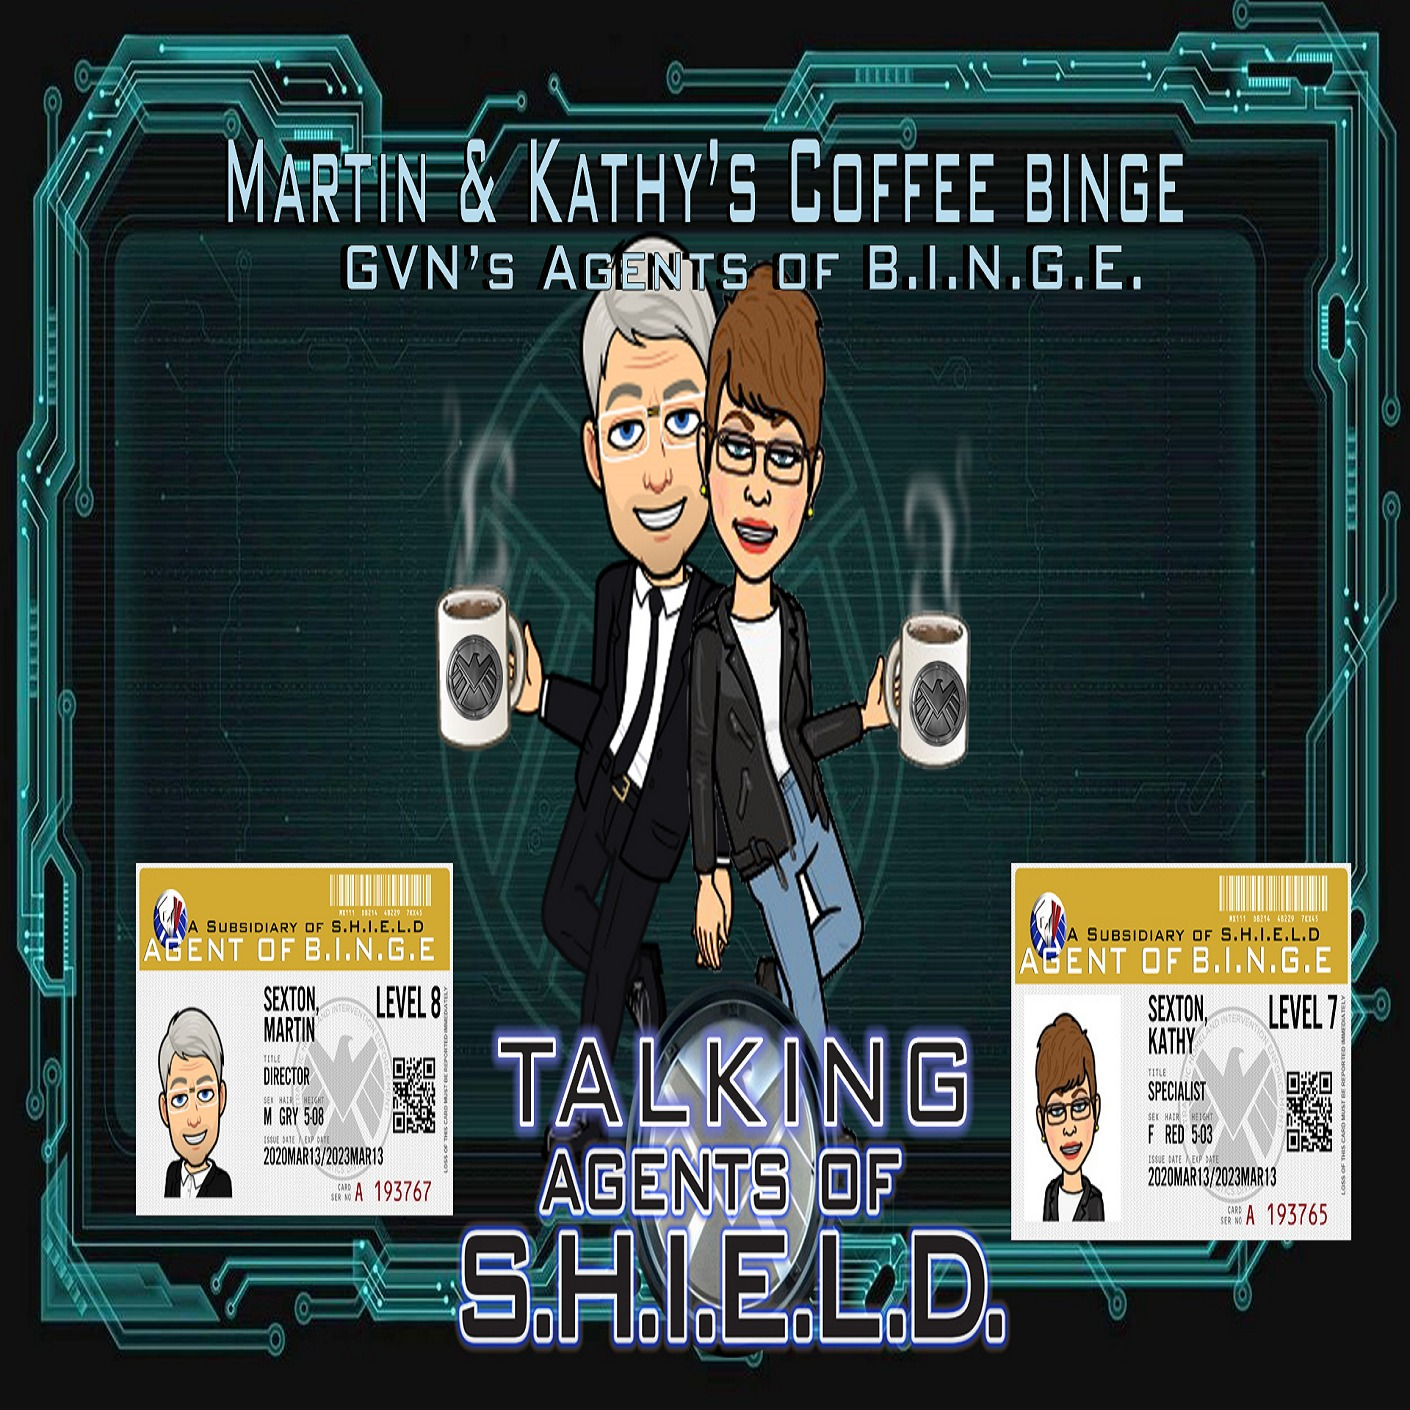 Martin & Kathy's Coffee Binge - Marvel's Agents of Shield